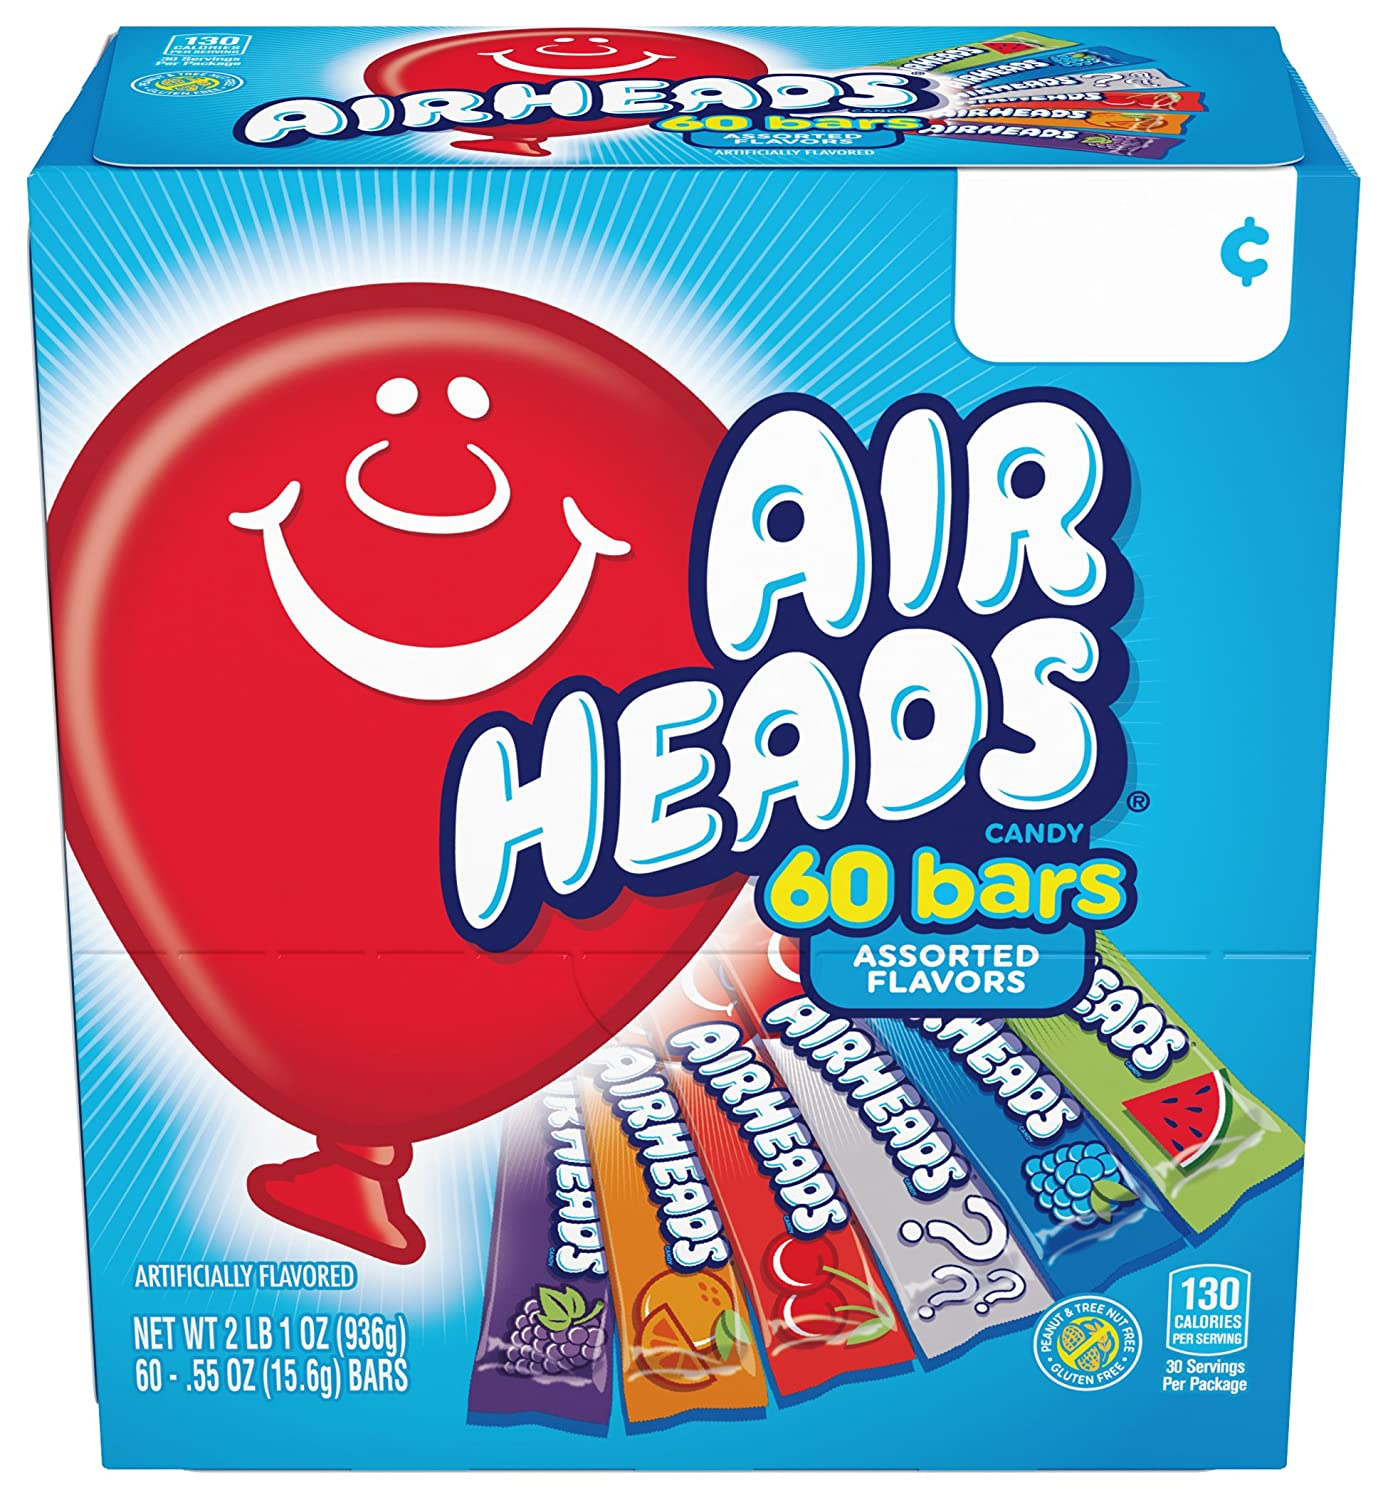 Airheads Candy Bars, Variety Stocking Stuffers Bulk Box, Chewy Full Size Fruit Taffy, Gifts, Back to School for Kids, Non Melting, Party 60 Count (Packaging May Vary), 60 Variety Airheads 91pPZ7Ch02BL